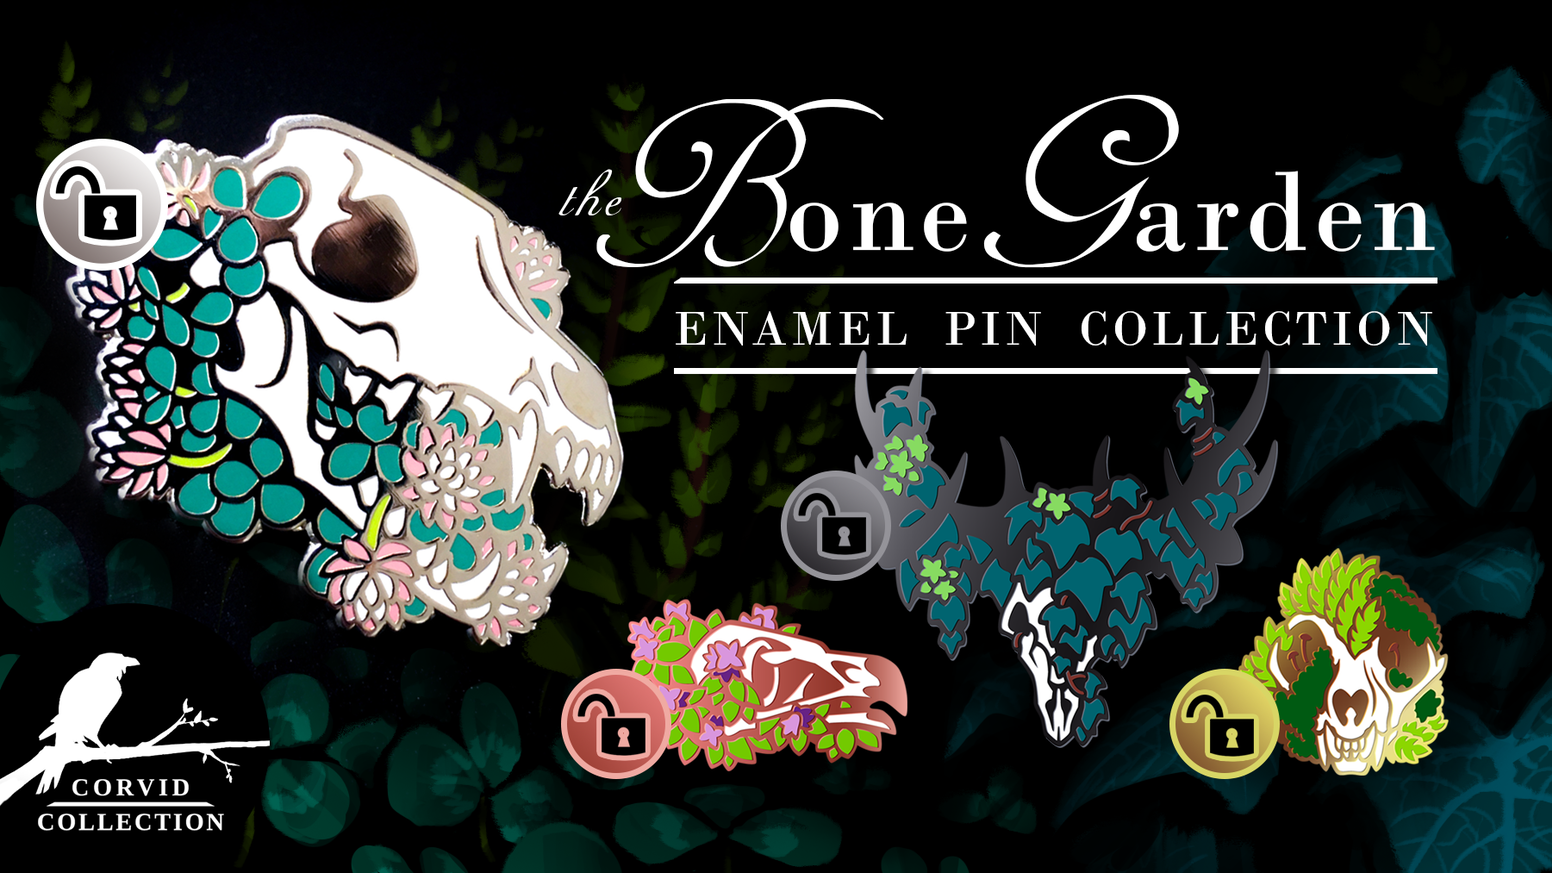 A hard enamel pin collection of grinning skulls and creeping plants, courtesy of your favorite bird-themed shop.